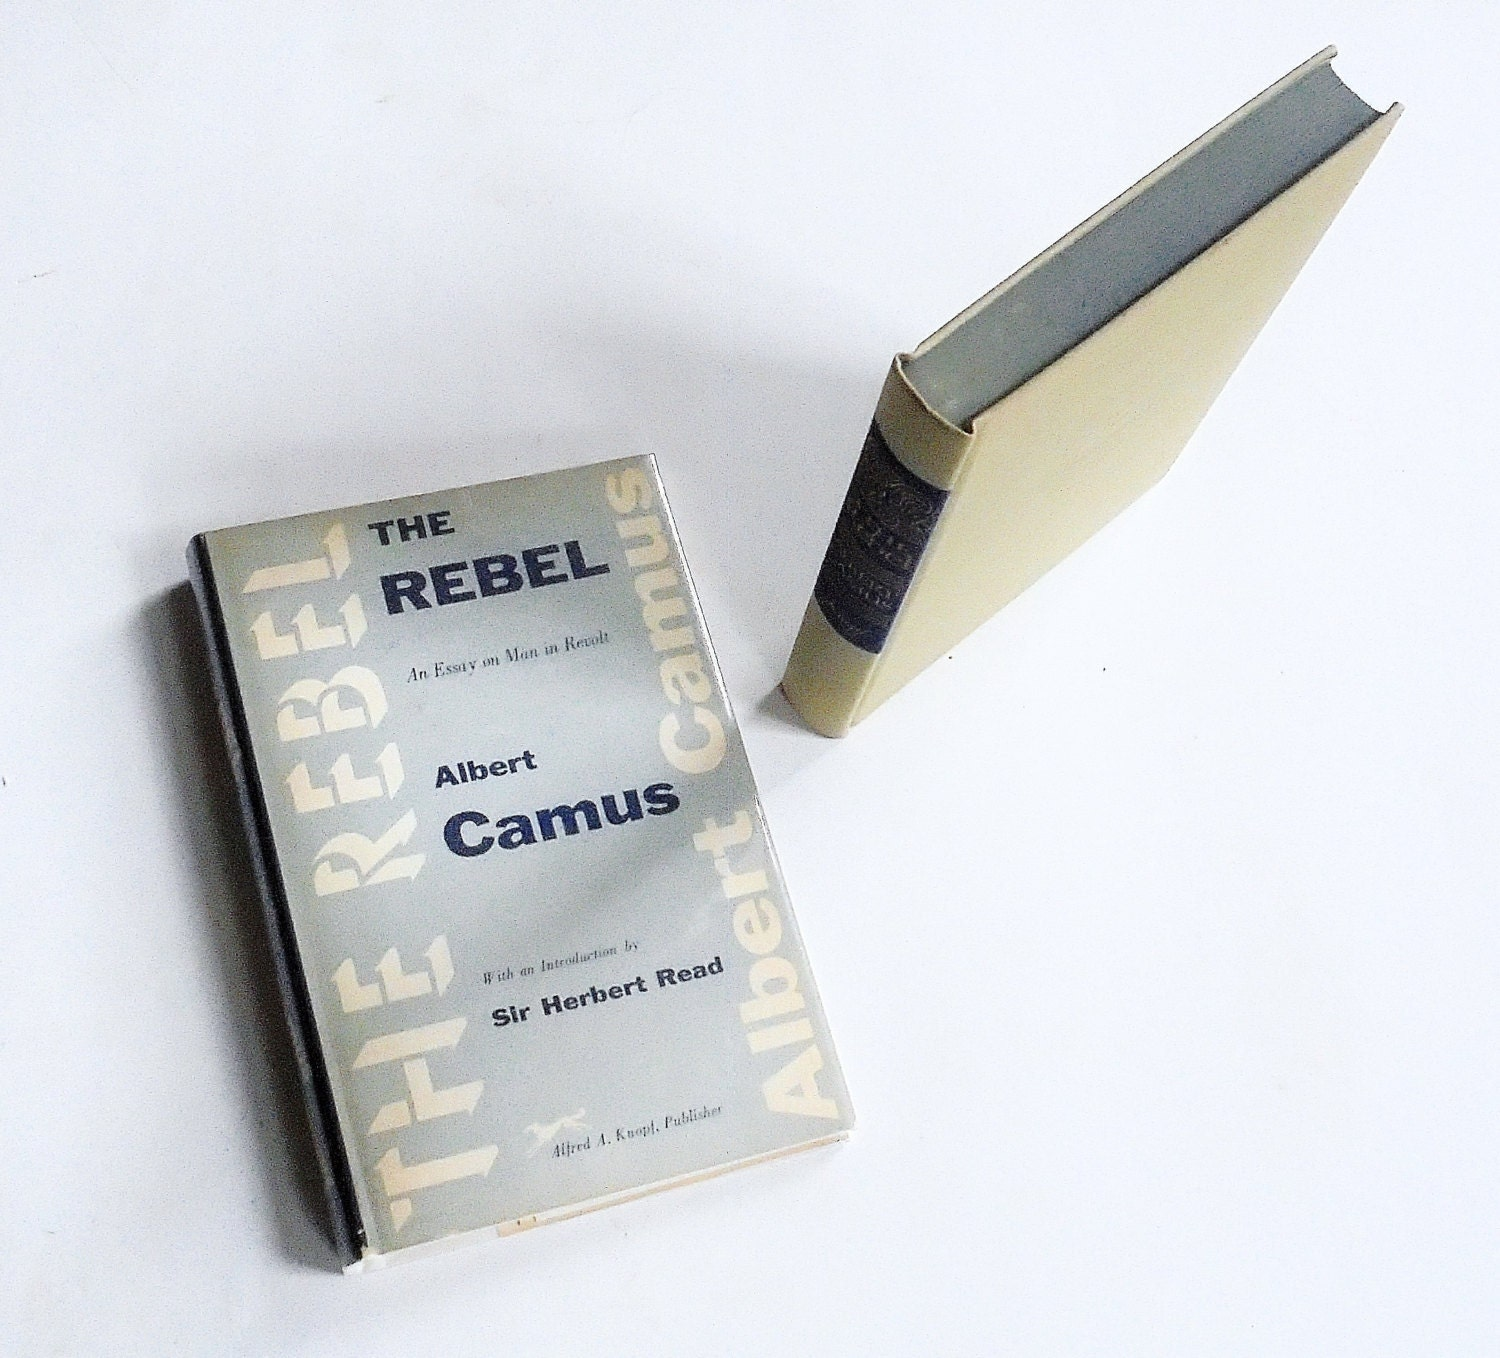 albert camus the rebel essay 91 121 113 106 albert camus the rebel essay